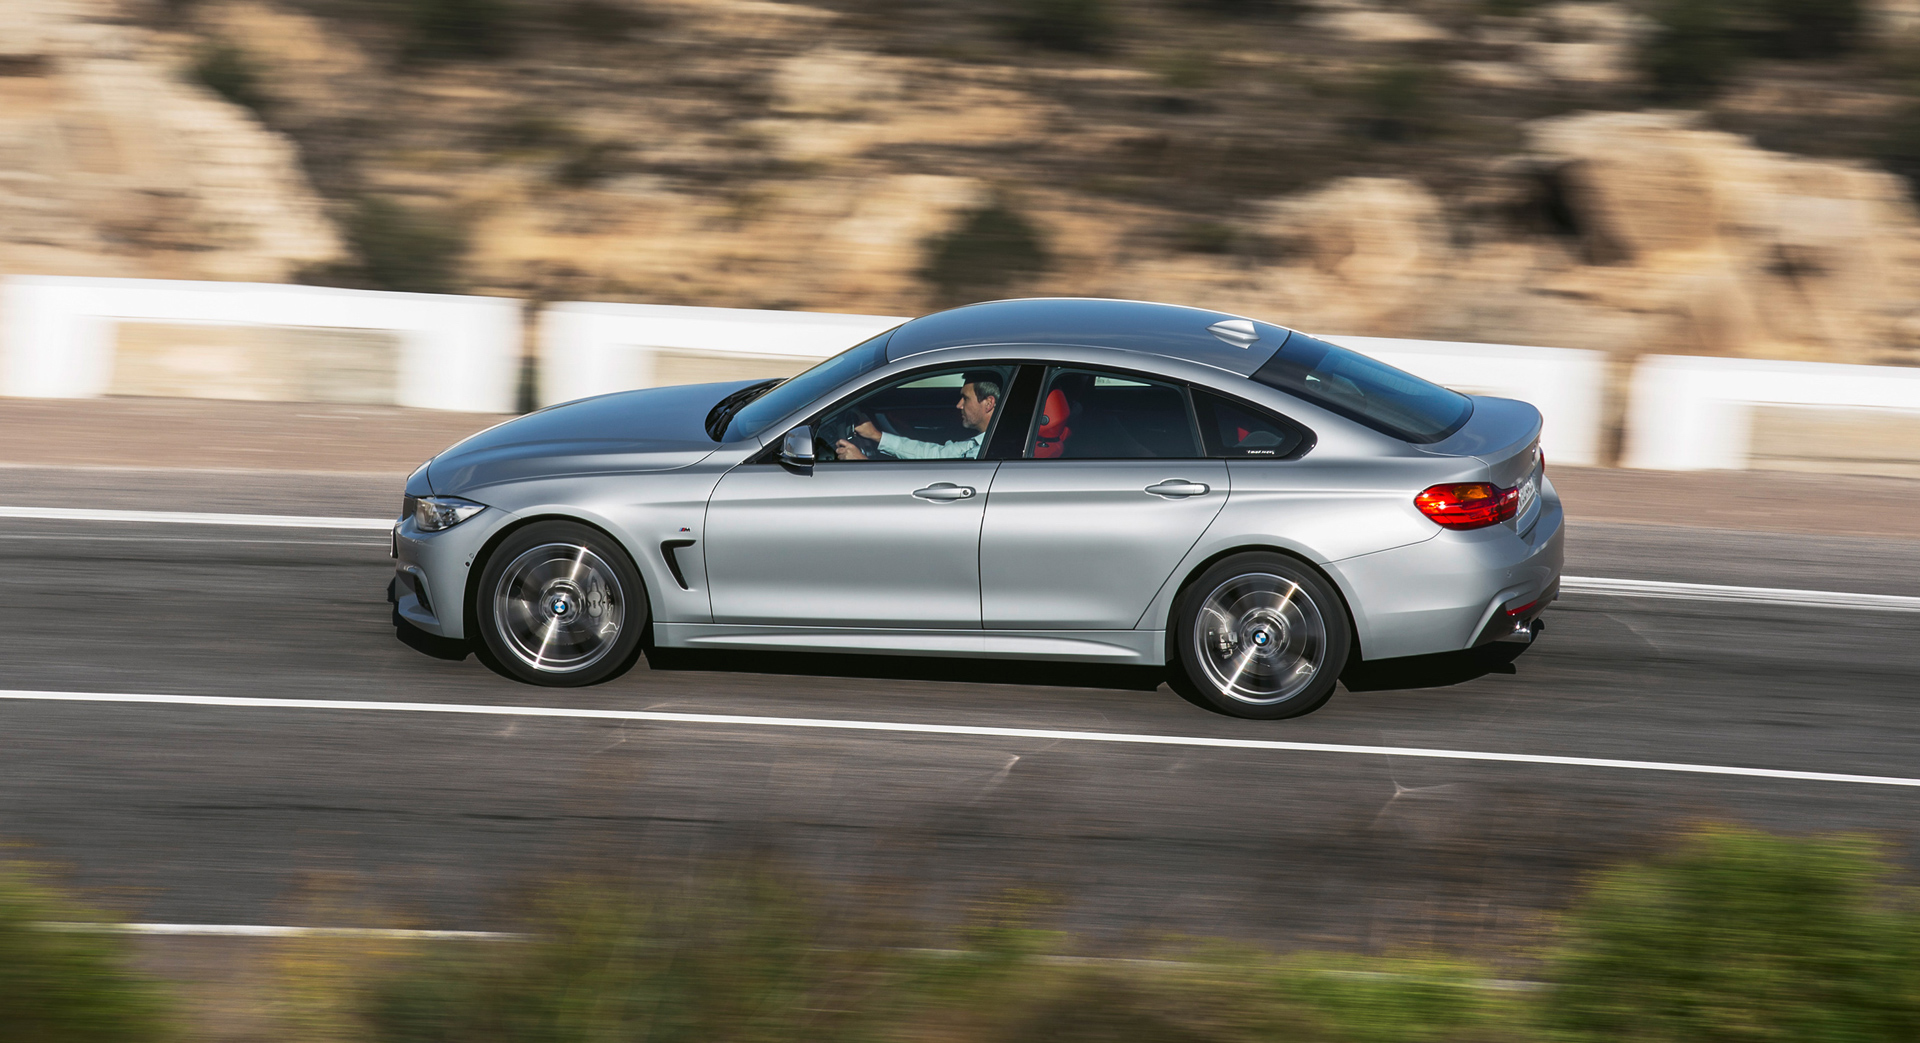 Two BMW winners in the Auto Zeitung Design Trophy 2015